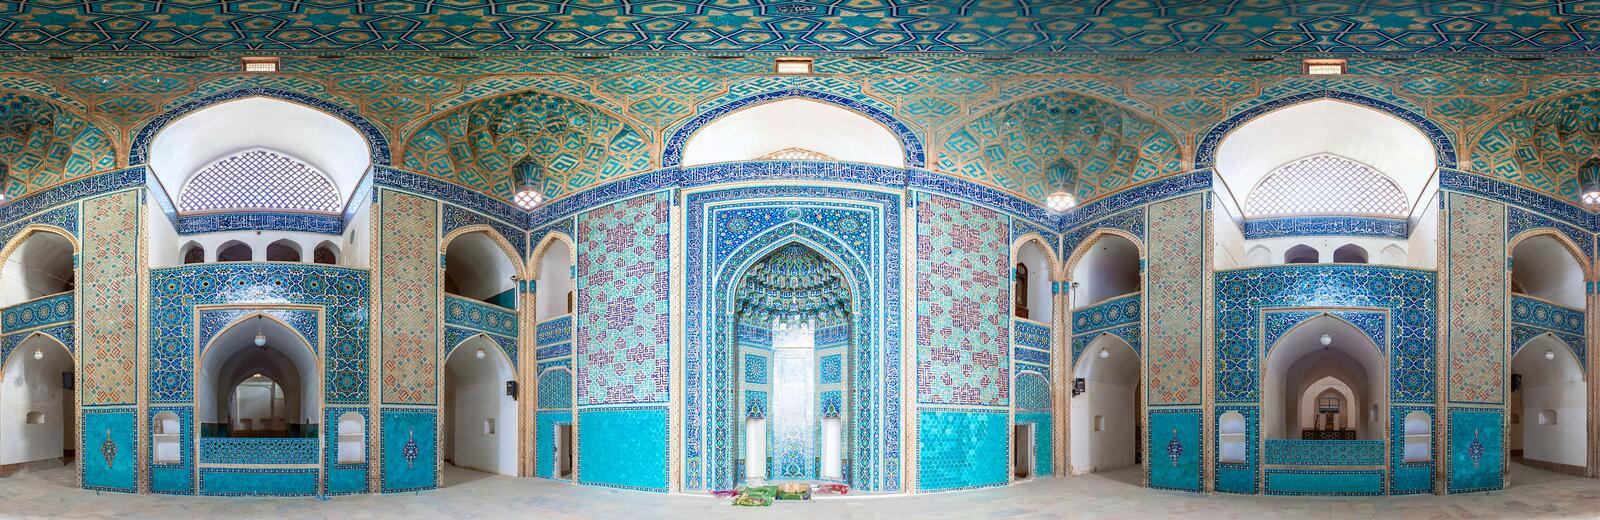 Jameh Mosque in Yazd royalty free stock image